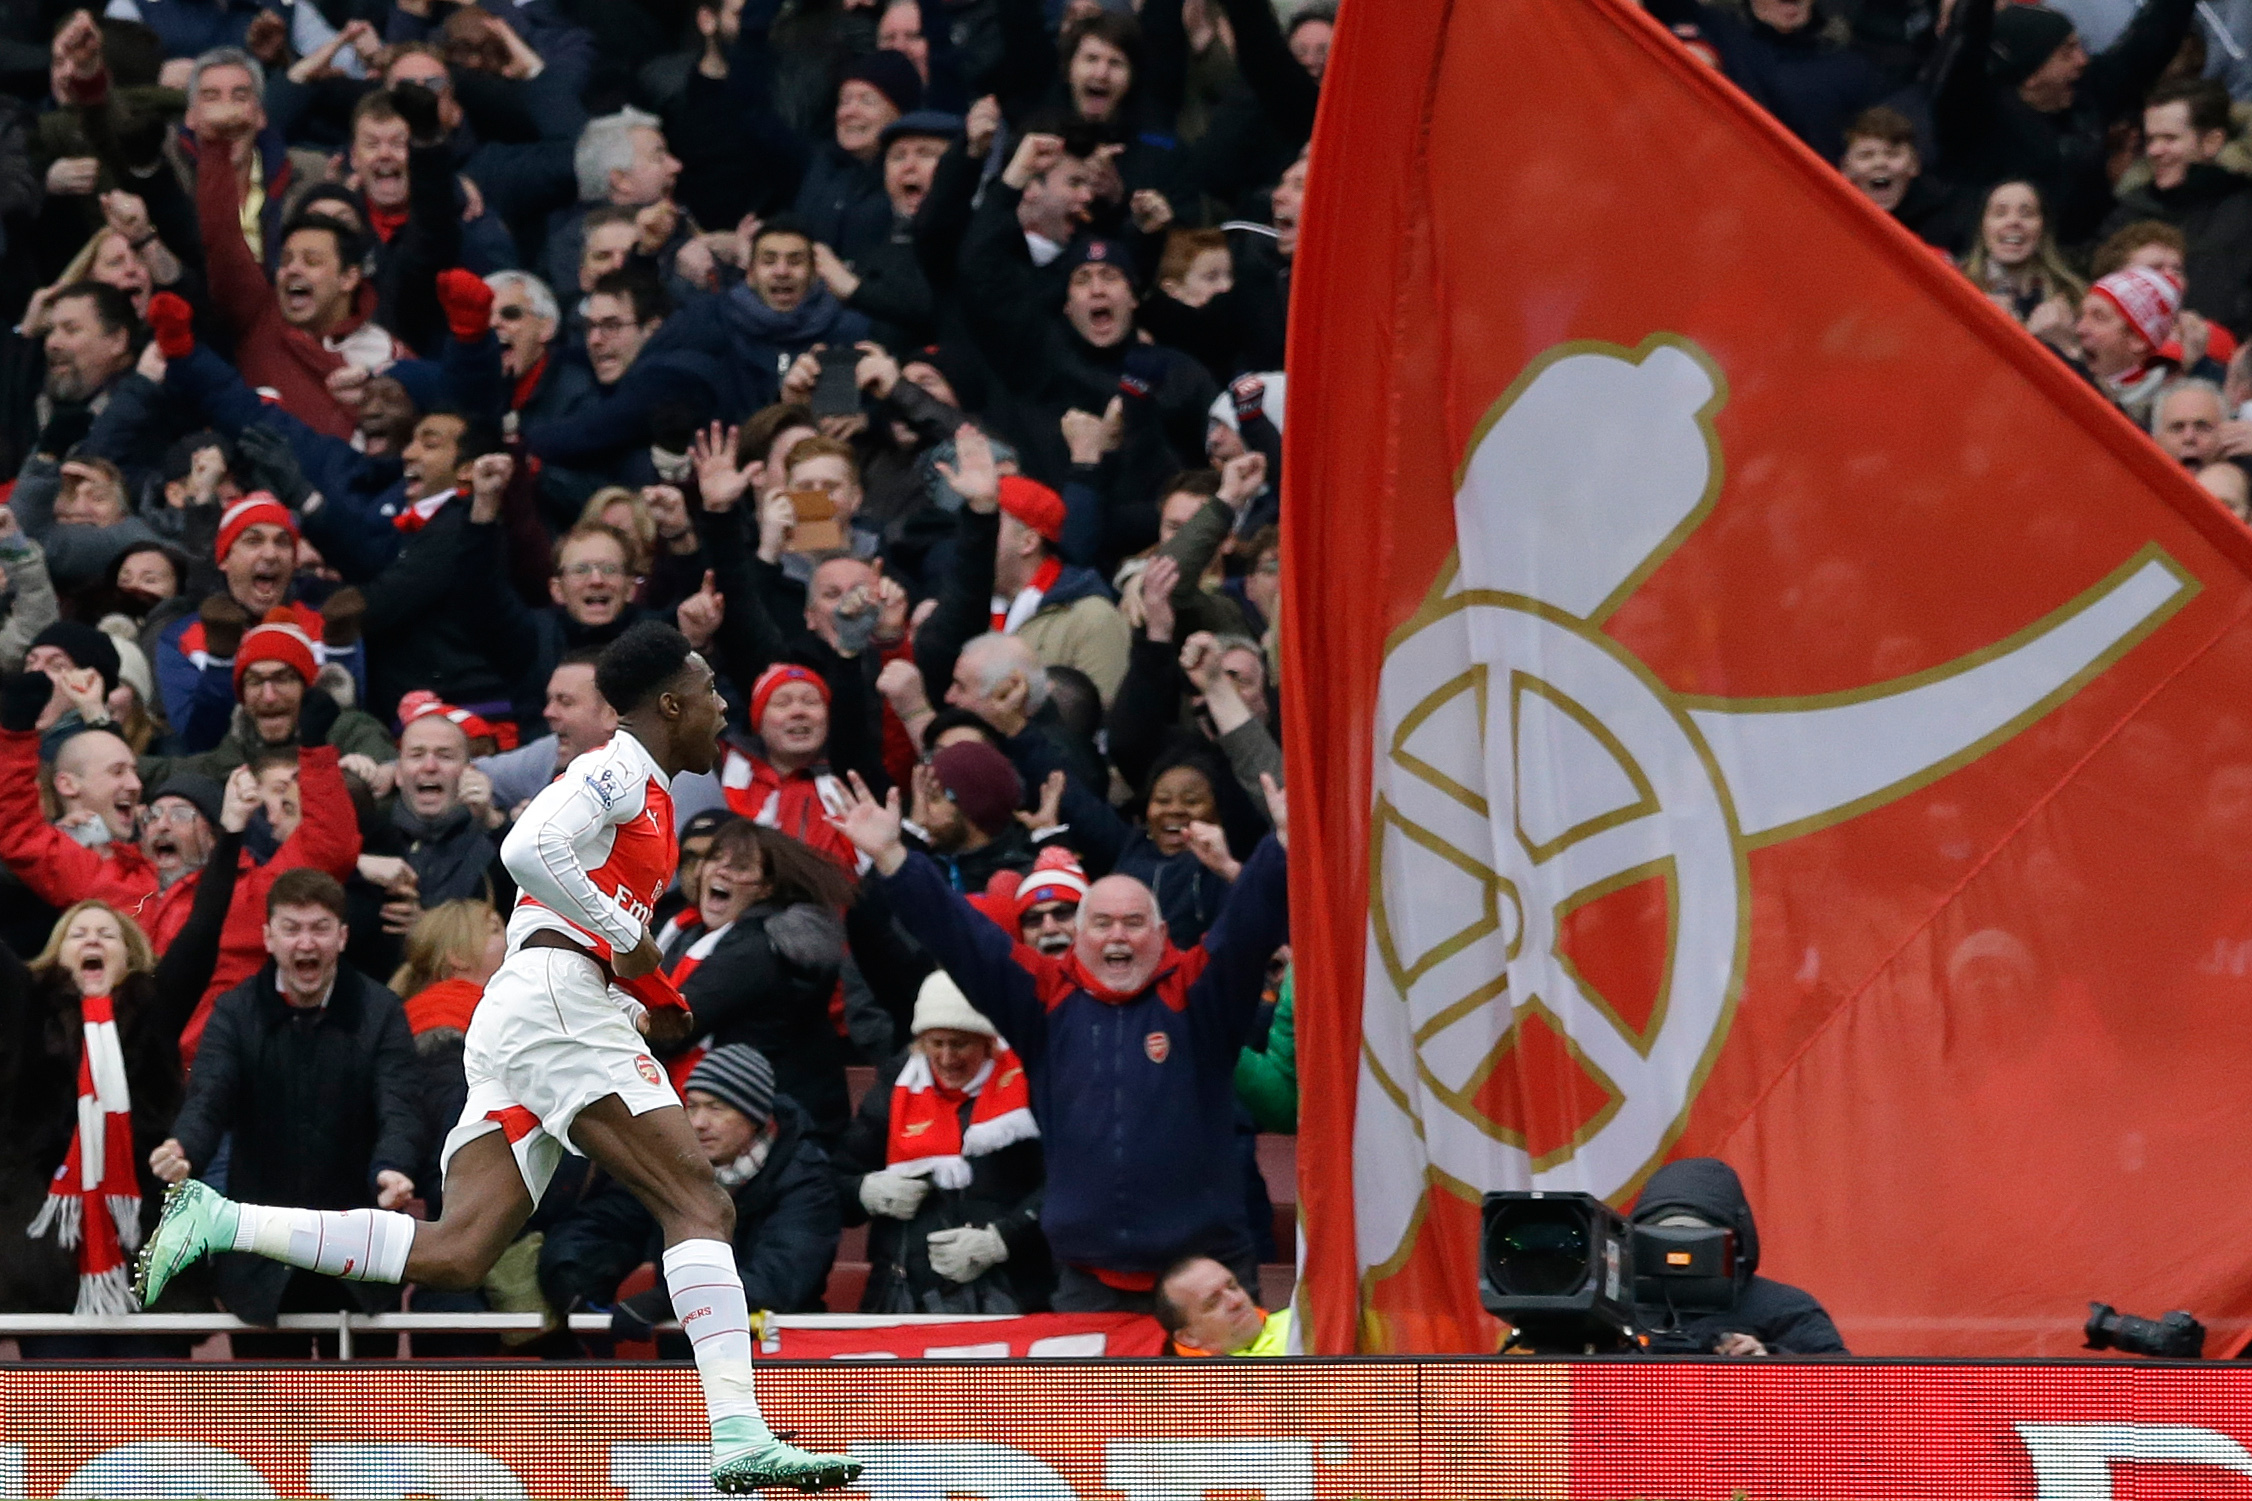 Uk Back Pages Arsenal S Danny Welbeck Hailed For His Winner Vs Leicester City Bleacher Report Latest News Videos And Highlights